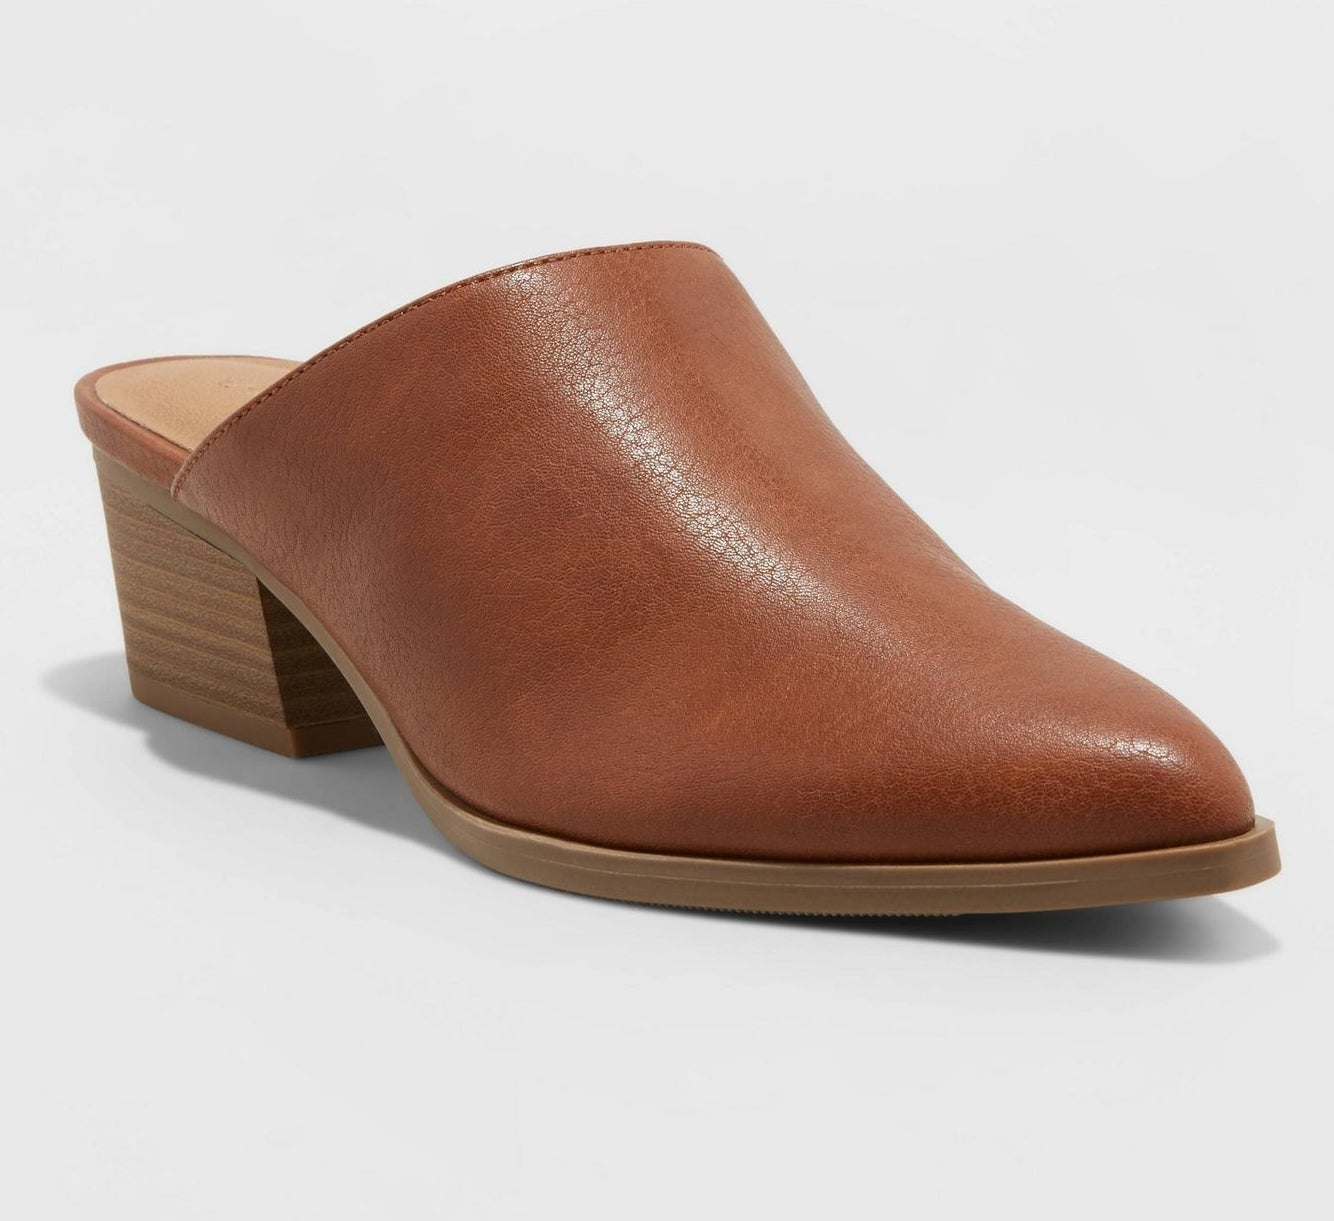 brown pointed toe mules with low stacked heel